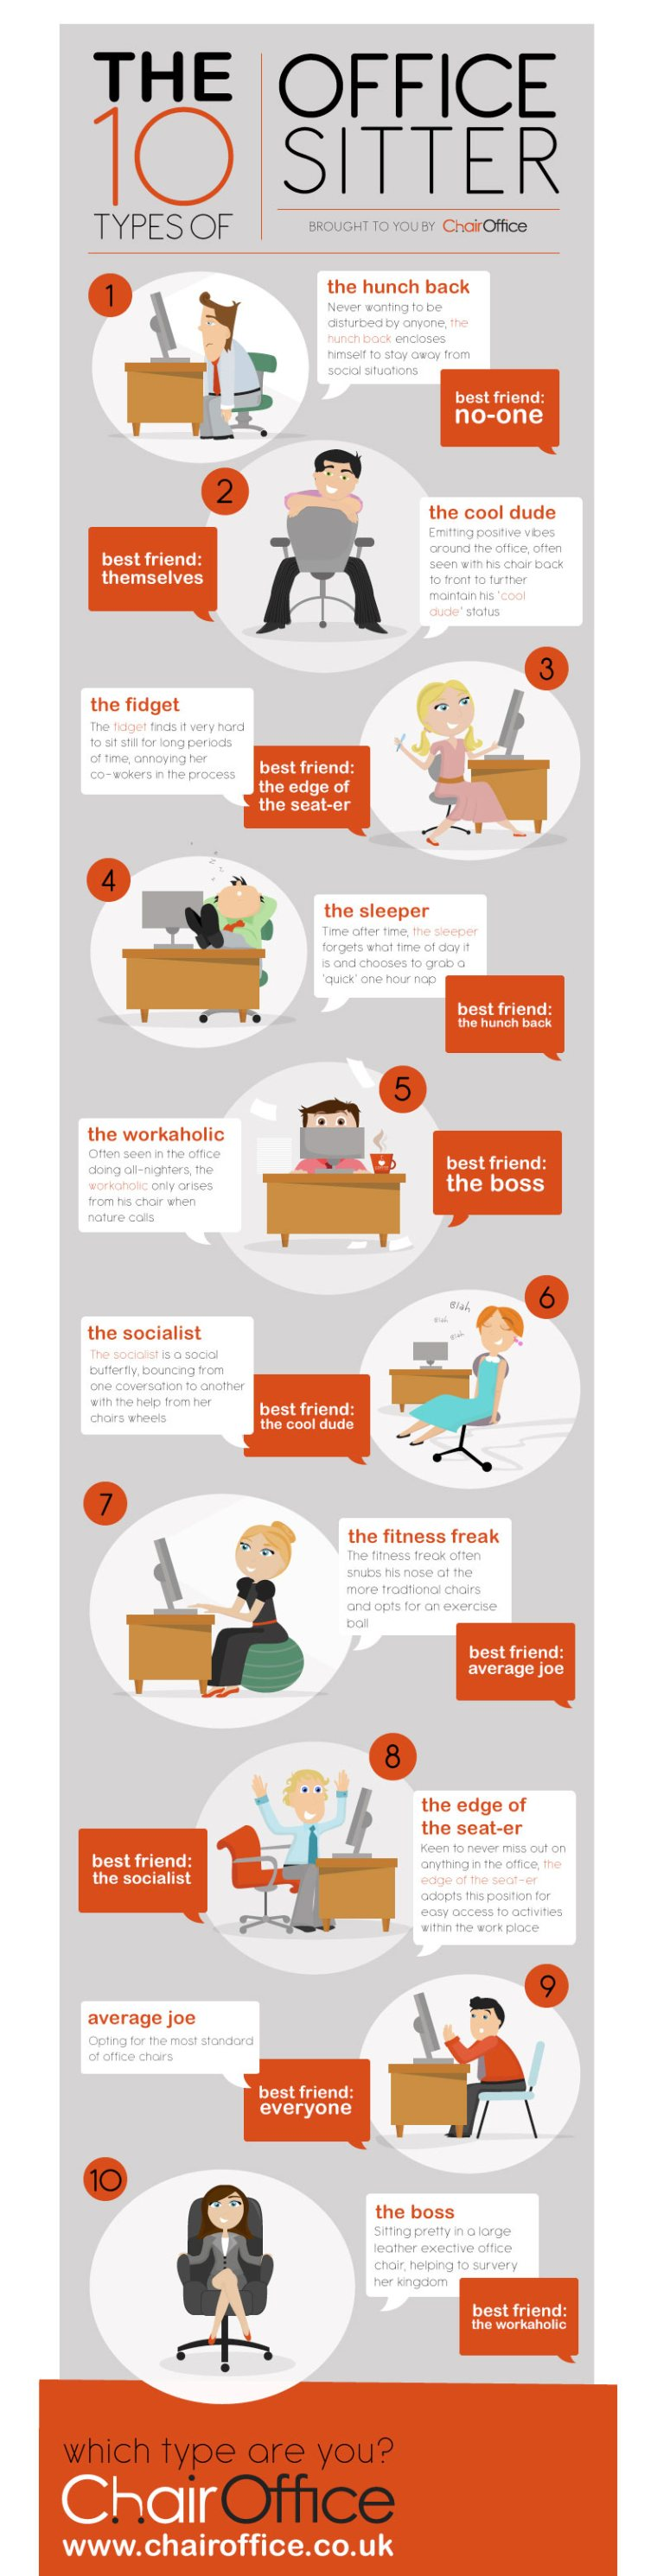 The 10 types of office sitter infographic